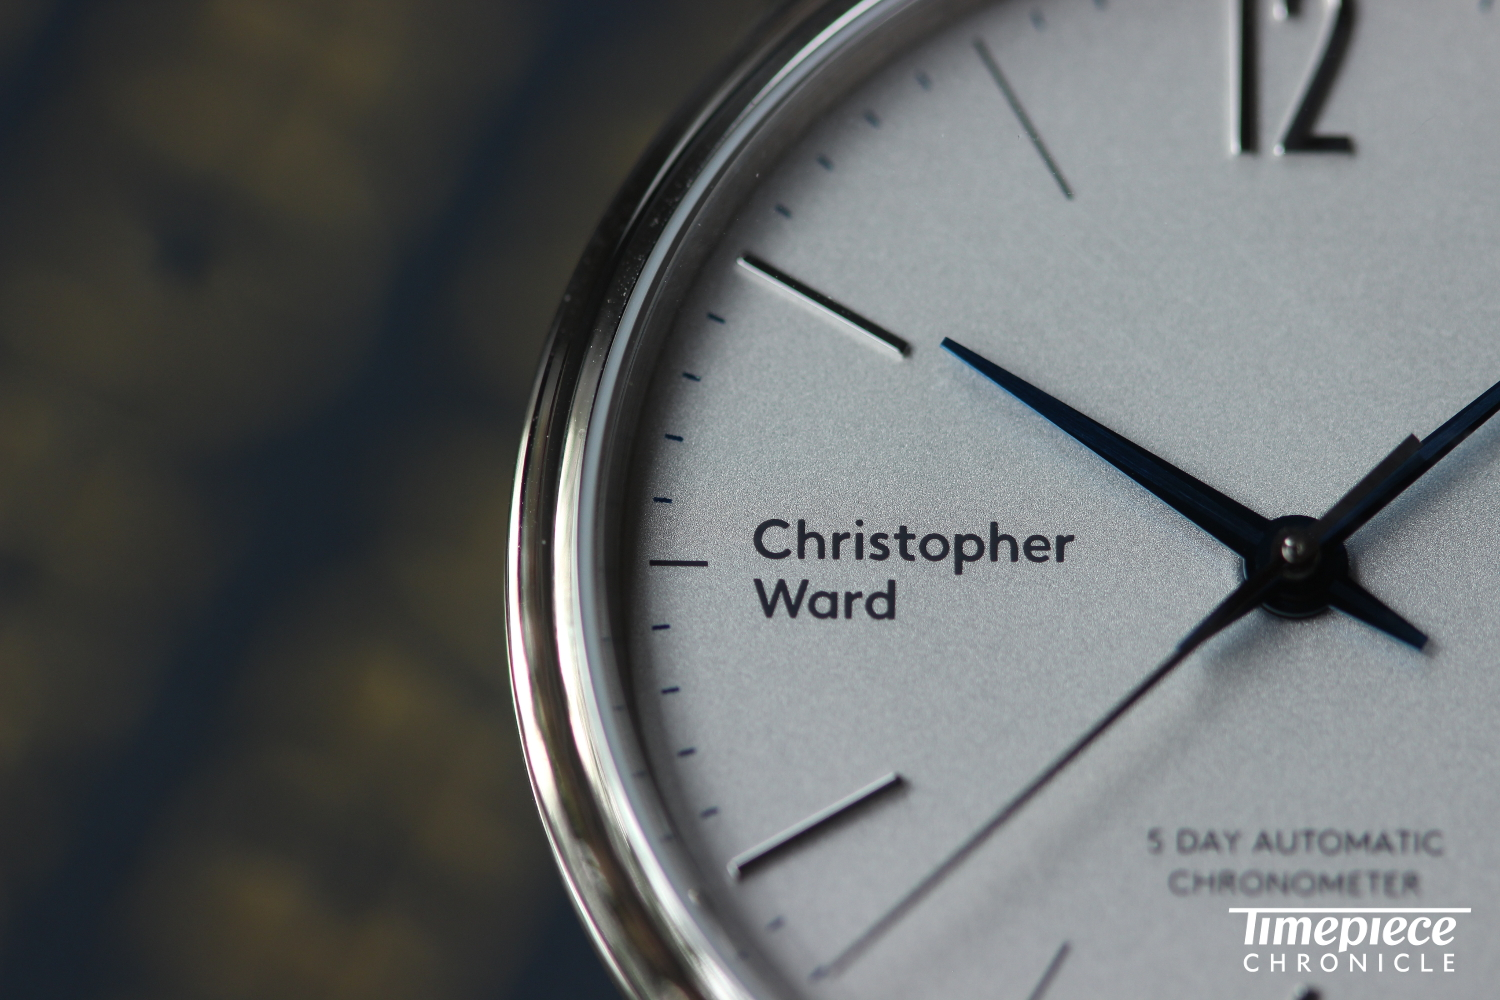 Christopher Ward 5 Day Automatic Dial macro 5.JPG